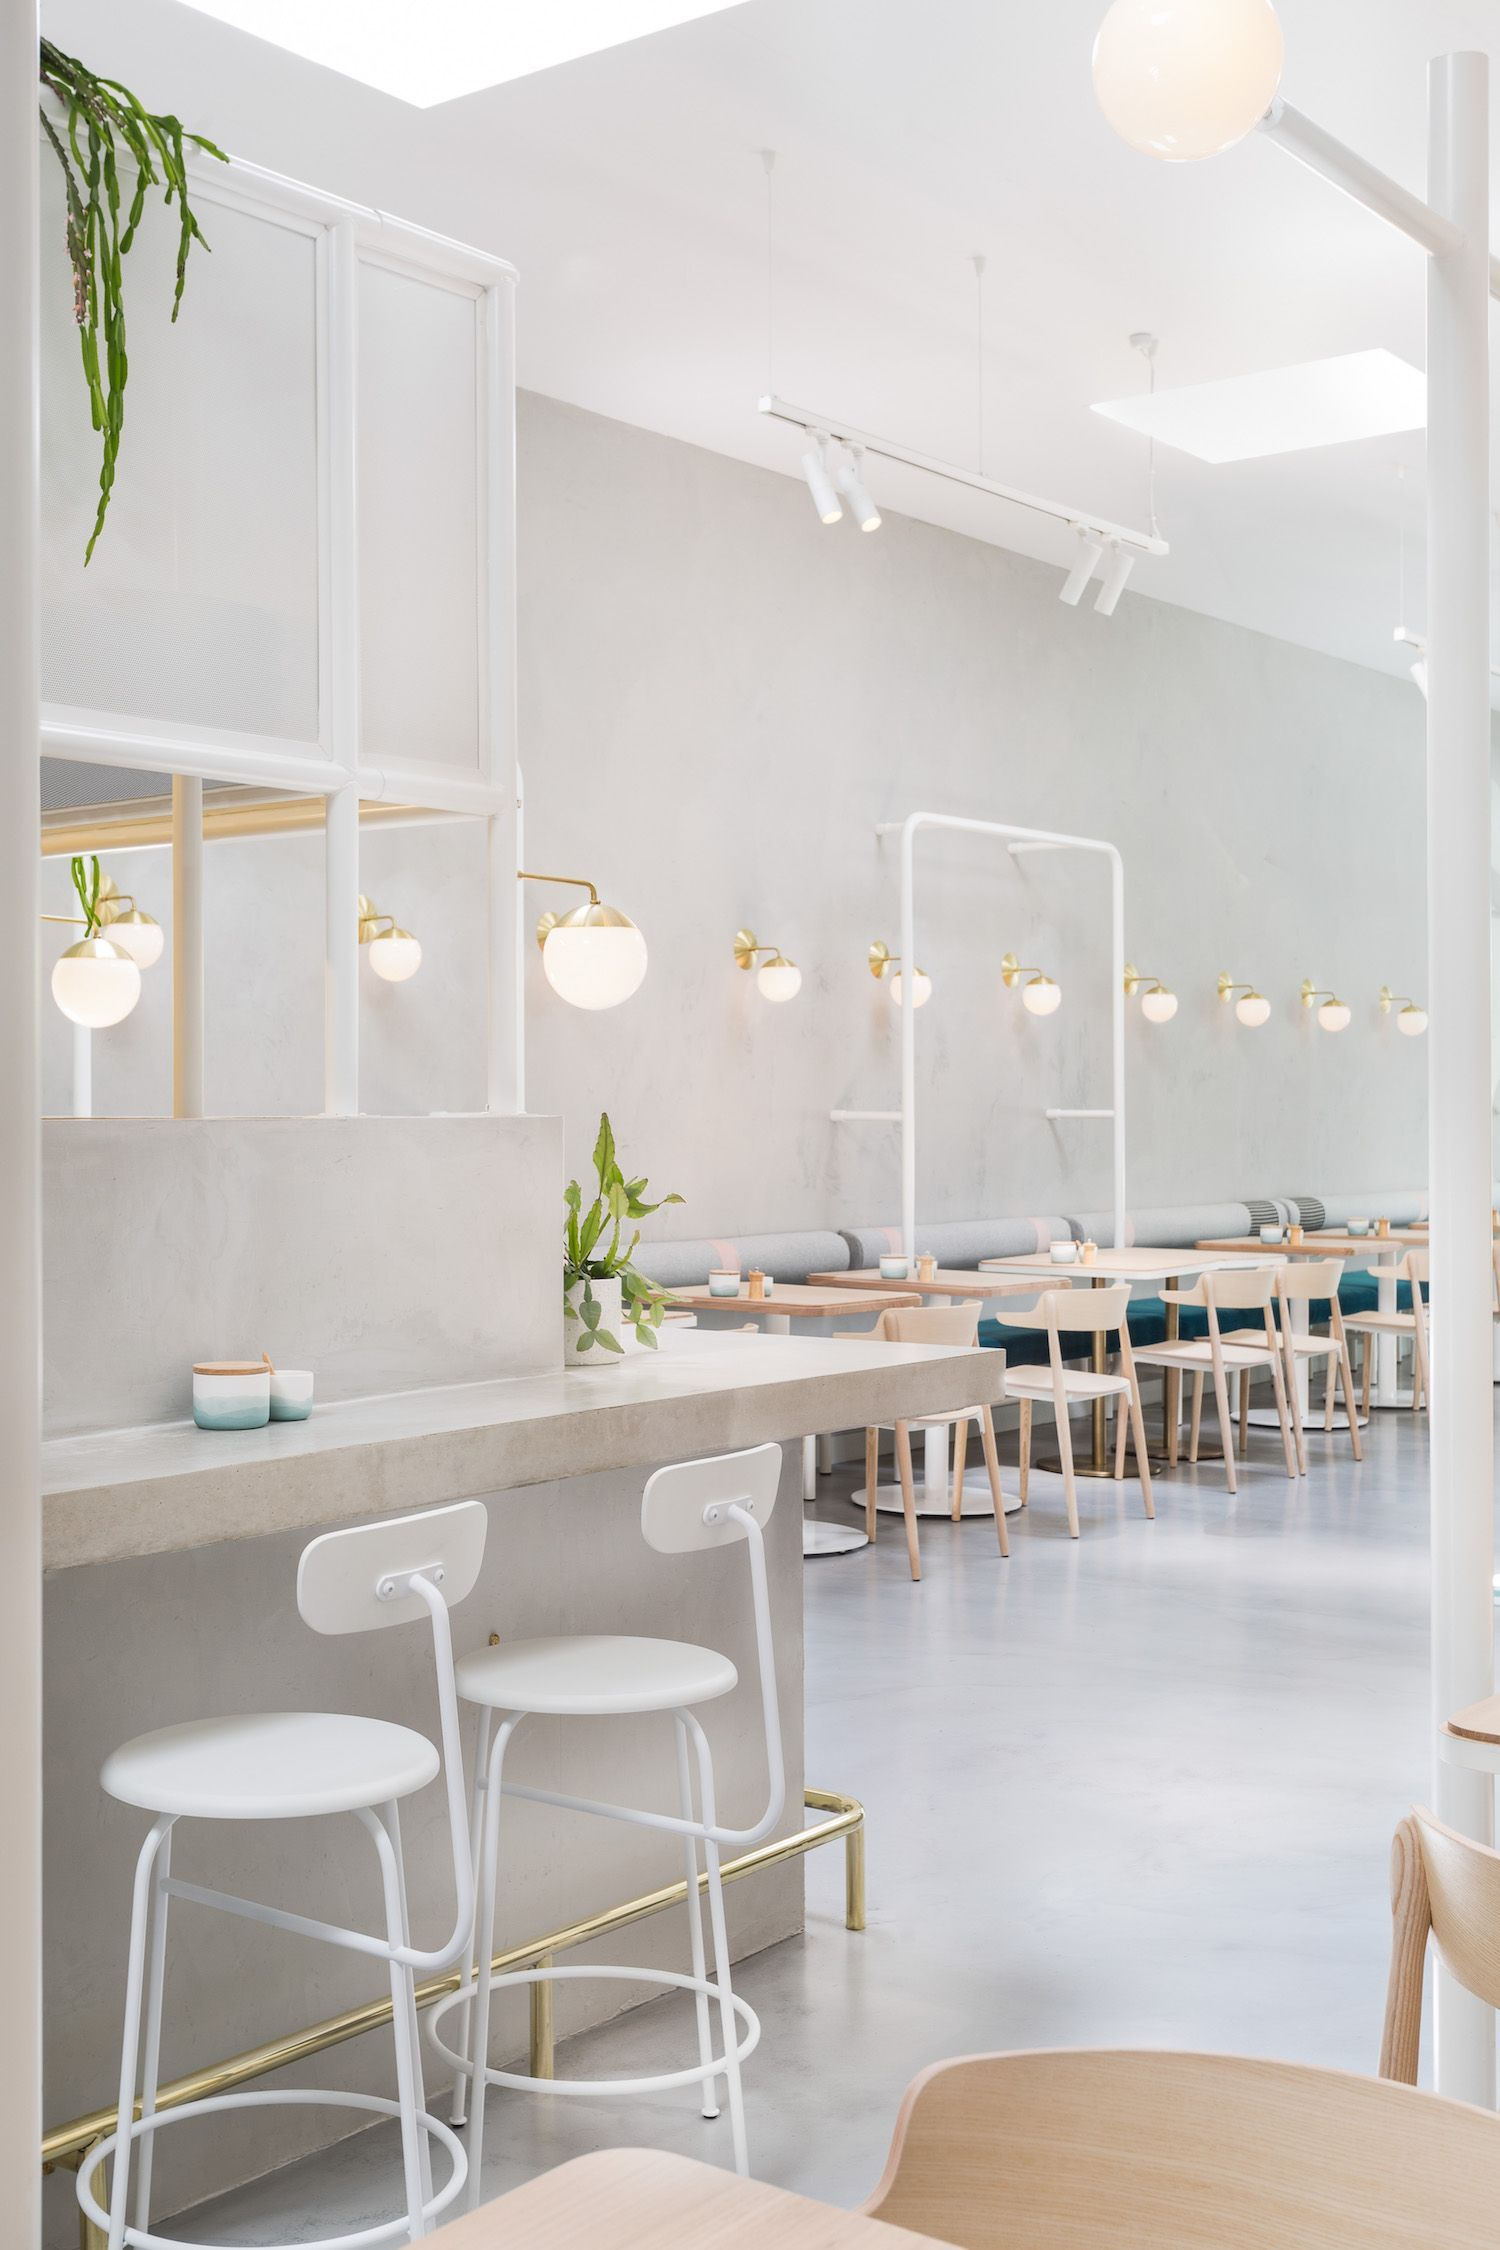 melbournes northern suburbs get a chic new dining addition thanks to the husband and wife team cafe interiorsrestaurant - Concrete Cafe Interior